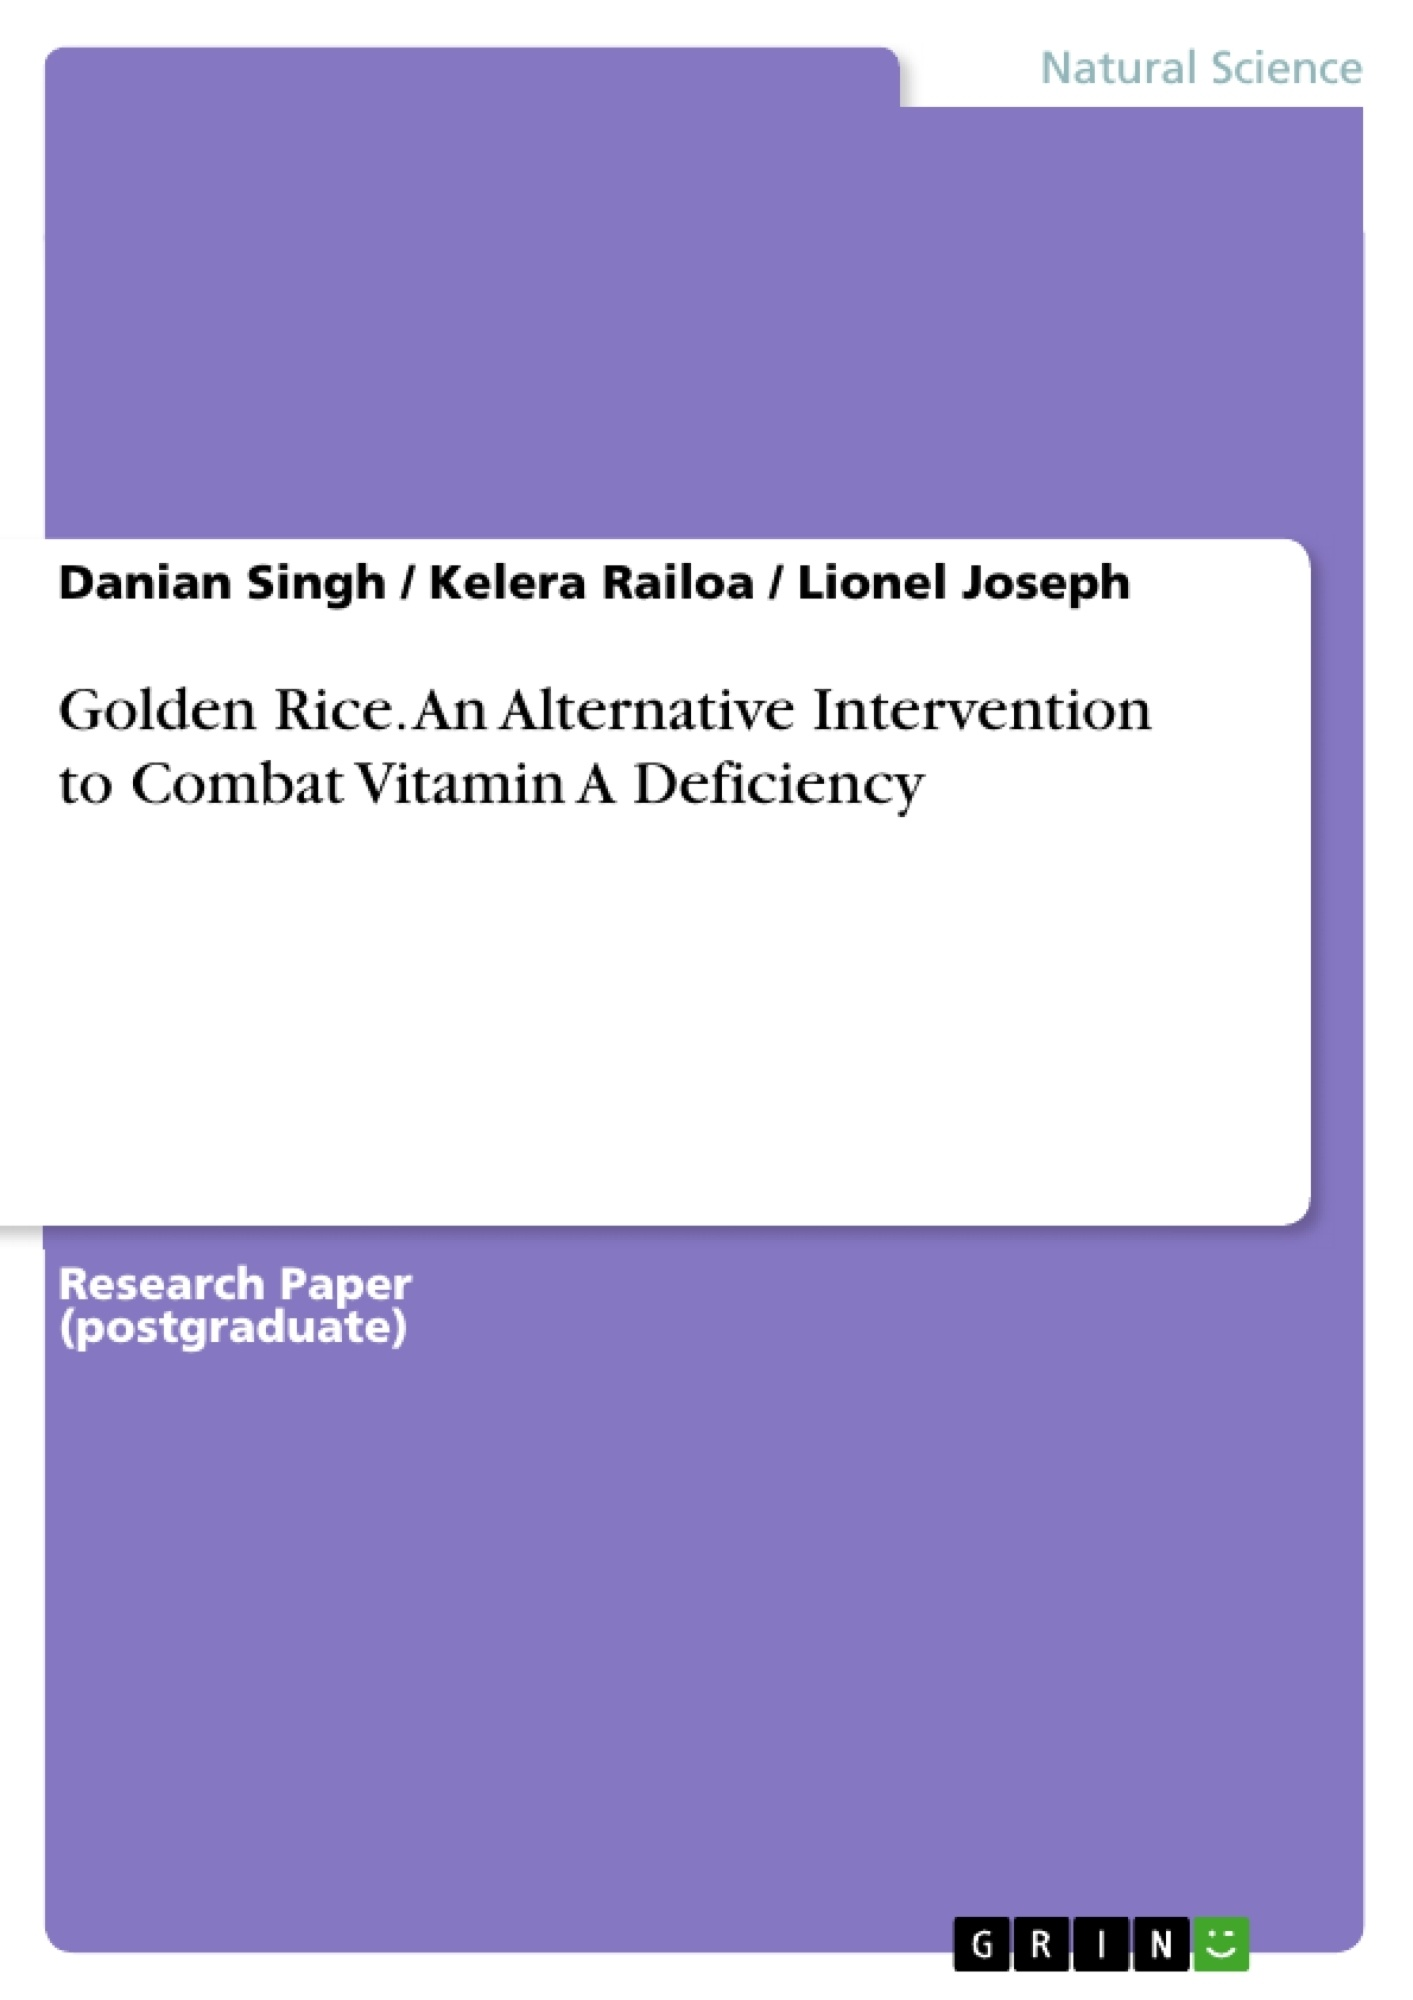 Title: Golden Rice. An Alternative Intervention to Combat Vitamin A Deficiency